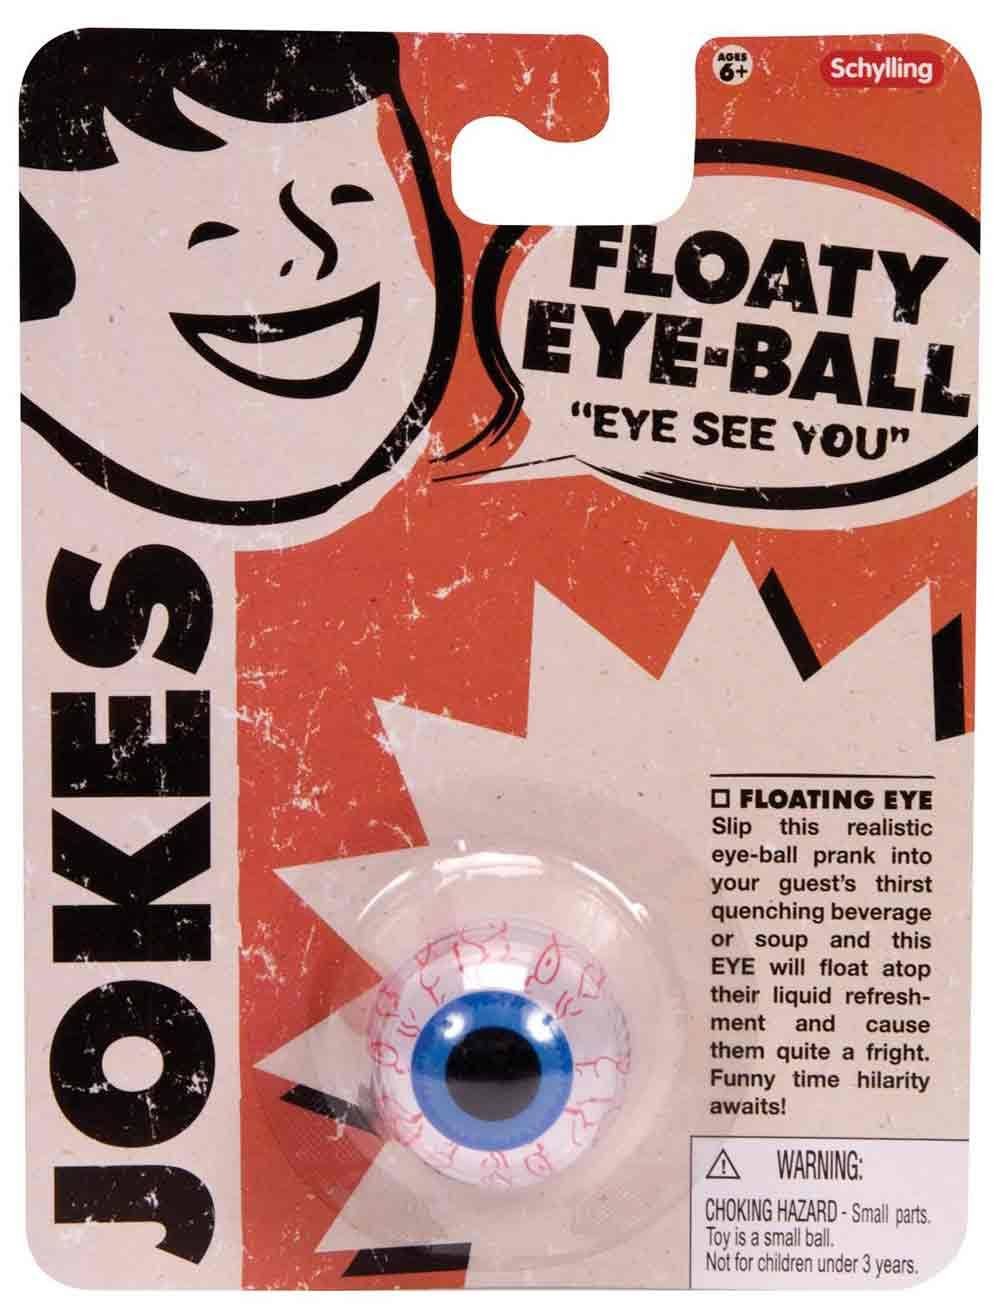 Schylling Jokes - Floaty Eye Ball #JFEB